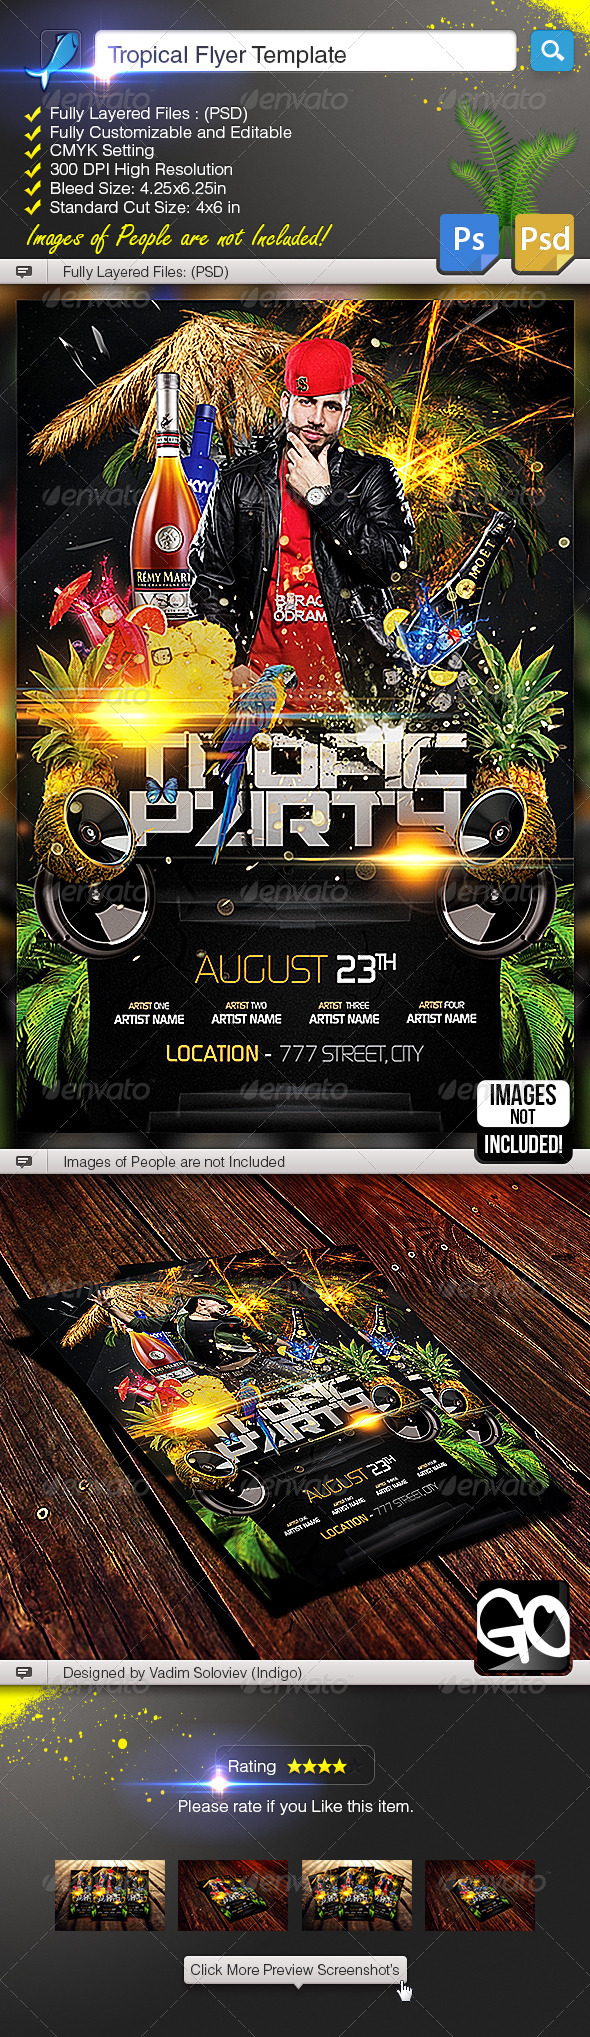 Tropical Flyer Template - Clubs & Parties Events